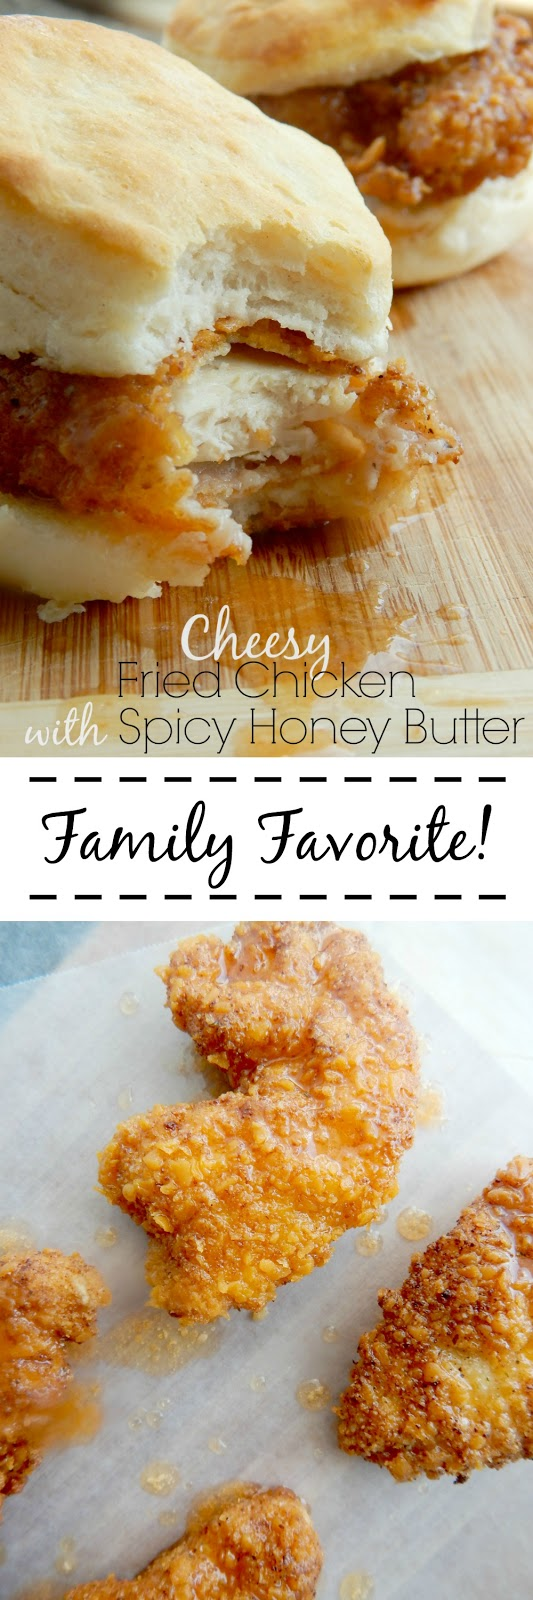 cheesy fried chicken with spicy honey butter (sweetandsavoryfood.com)